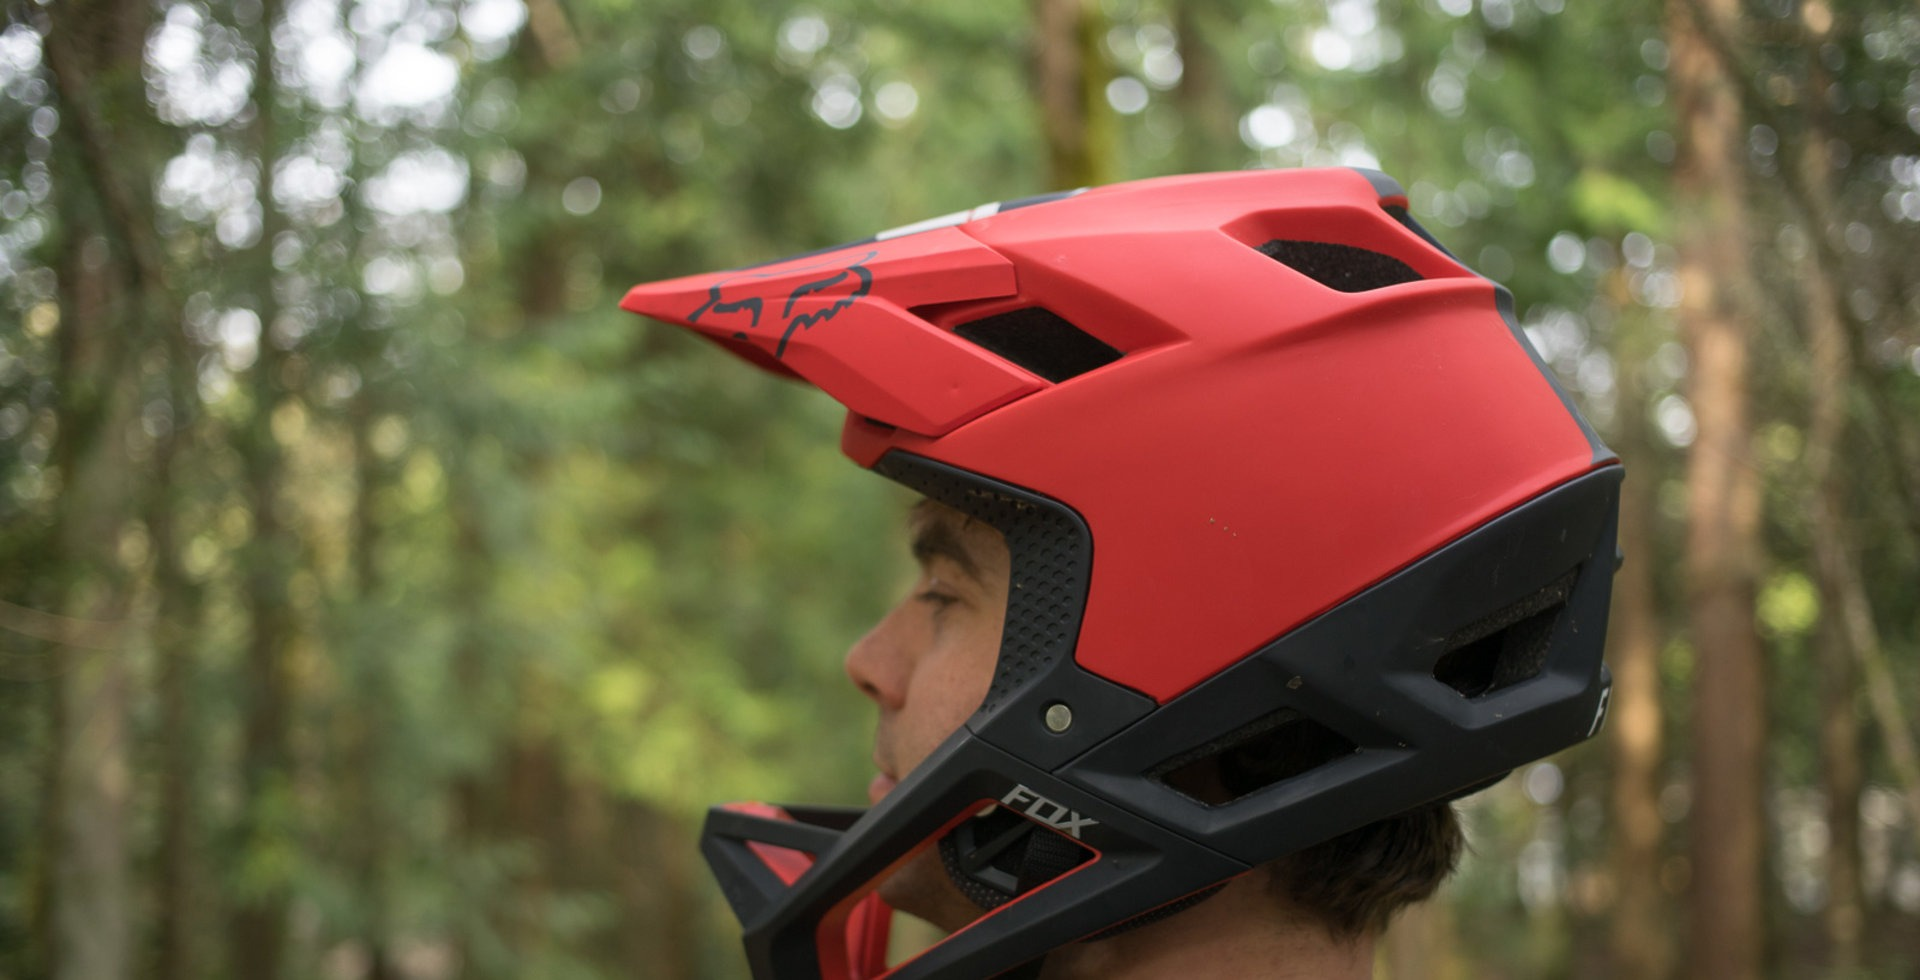 Light, breathable and fully protective, that's what Fox had in mind while designing the Proframe.